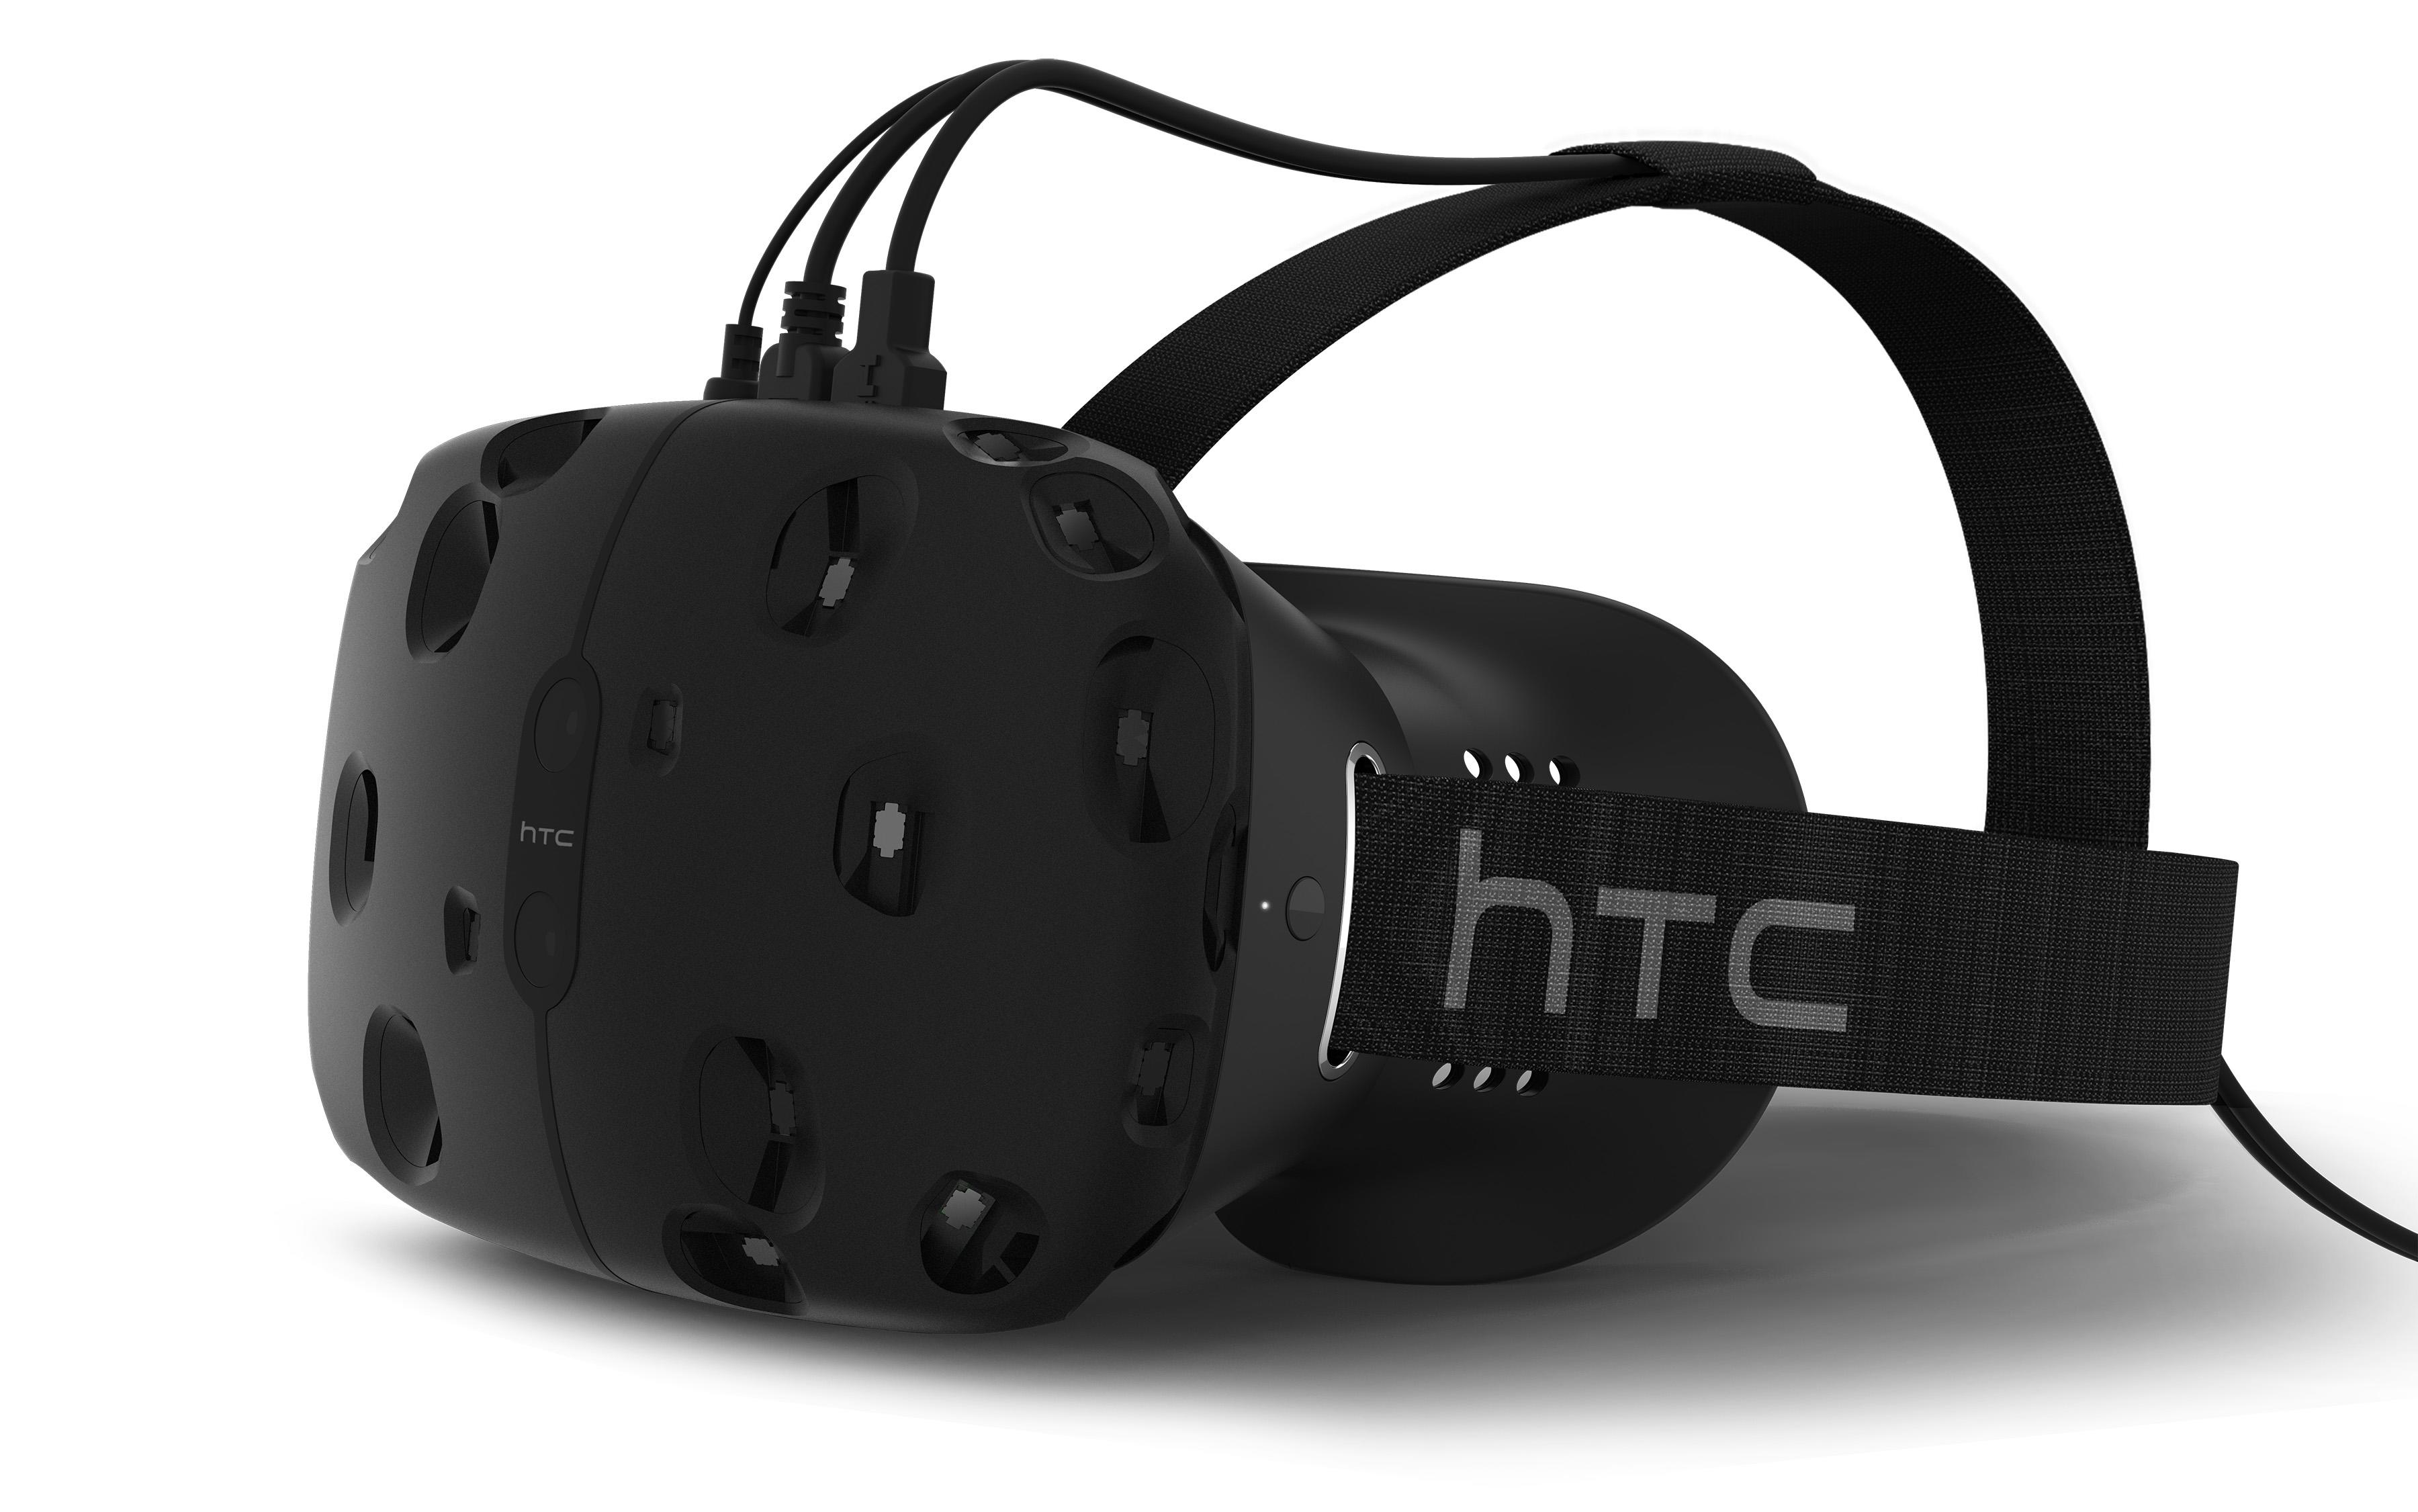 Some Developers Will Get Valve's Vive VR Headset for Free